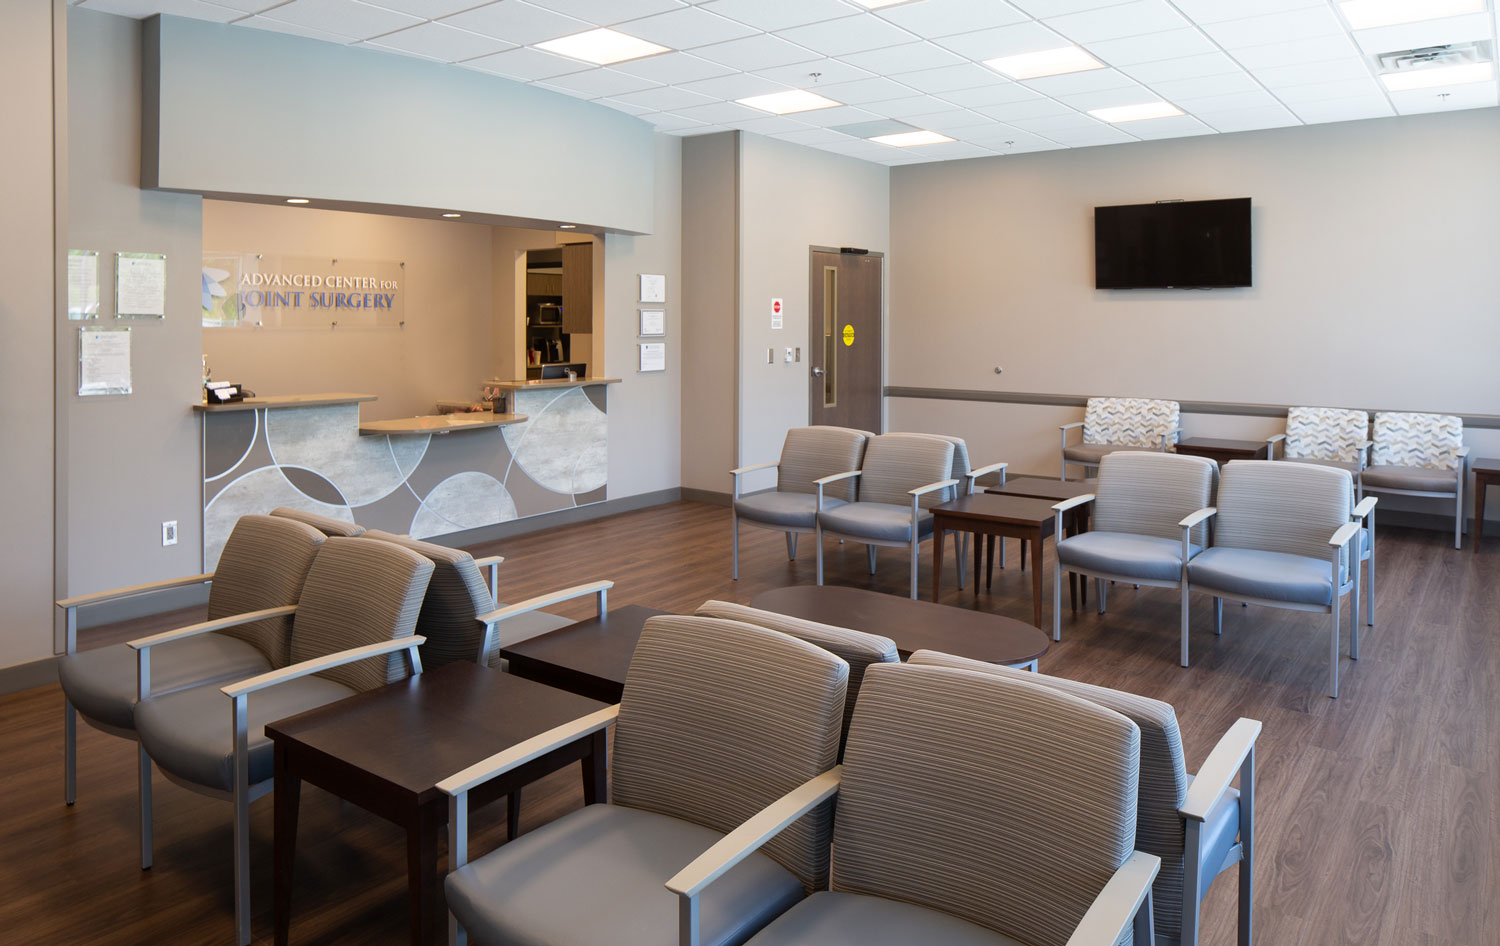 Advanced Center for Joint Surgery